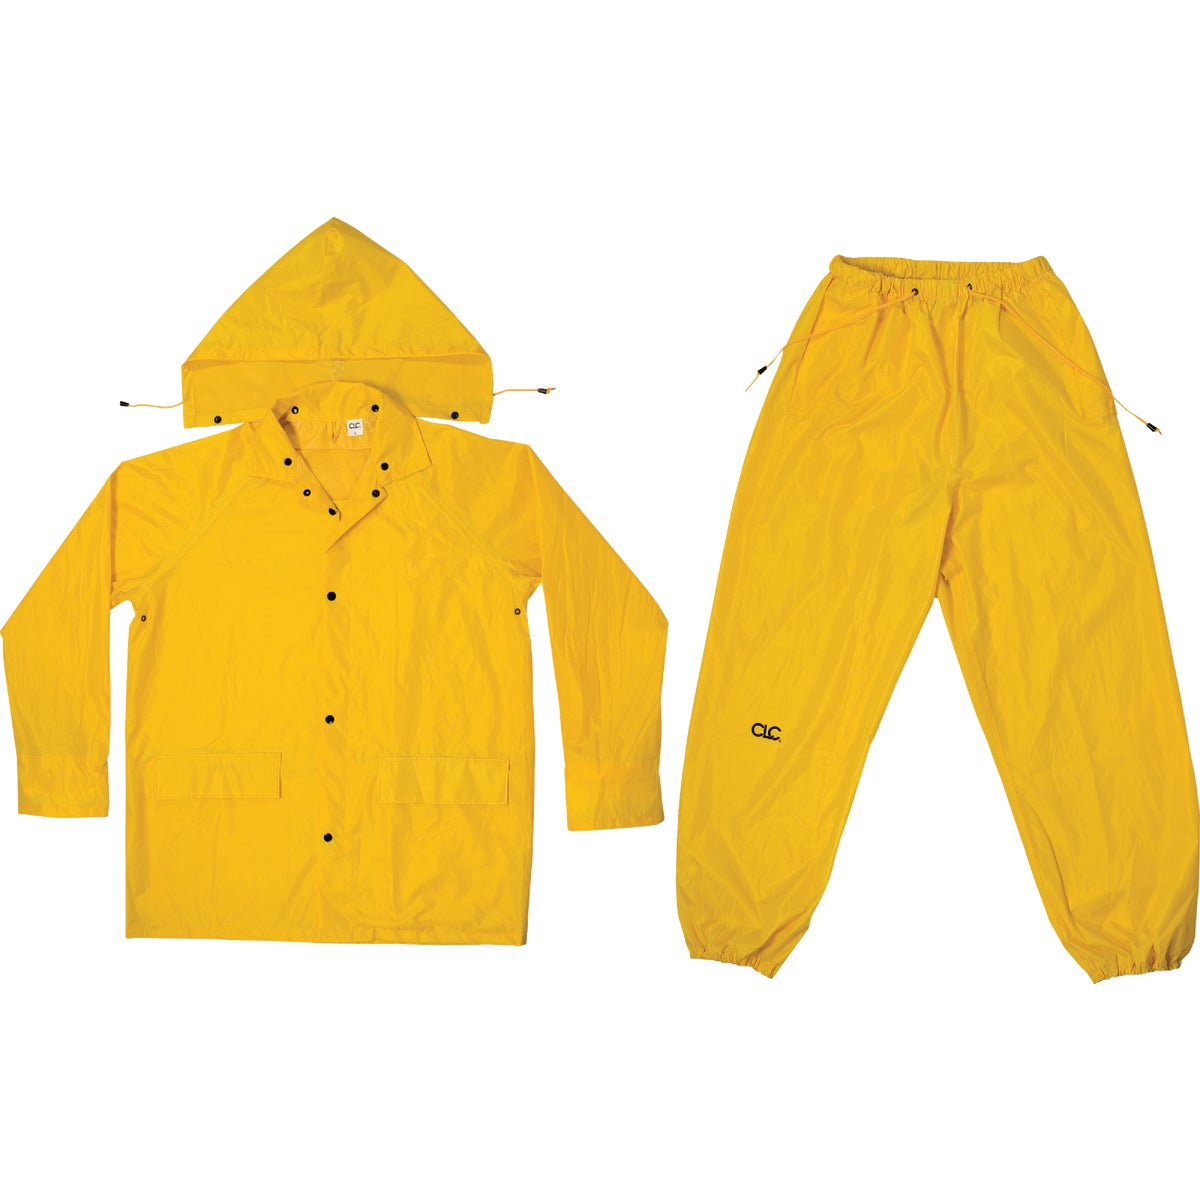 MED 3PC YEL RAIN SUIT